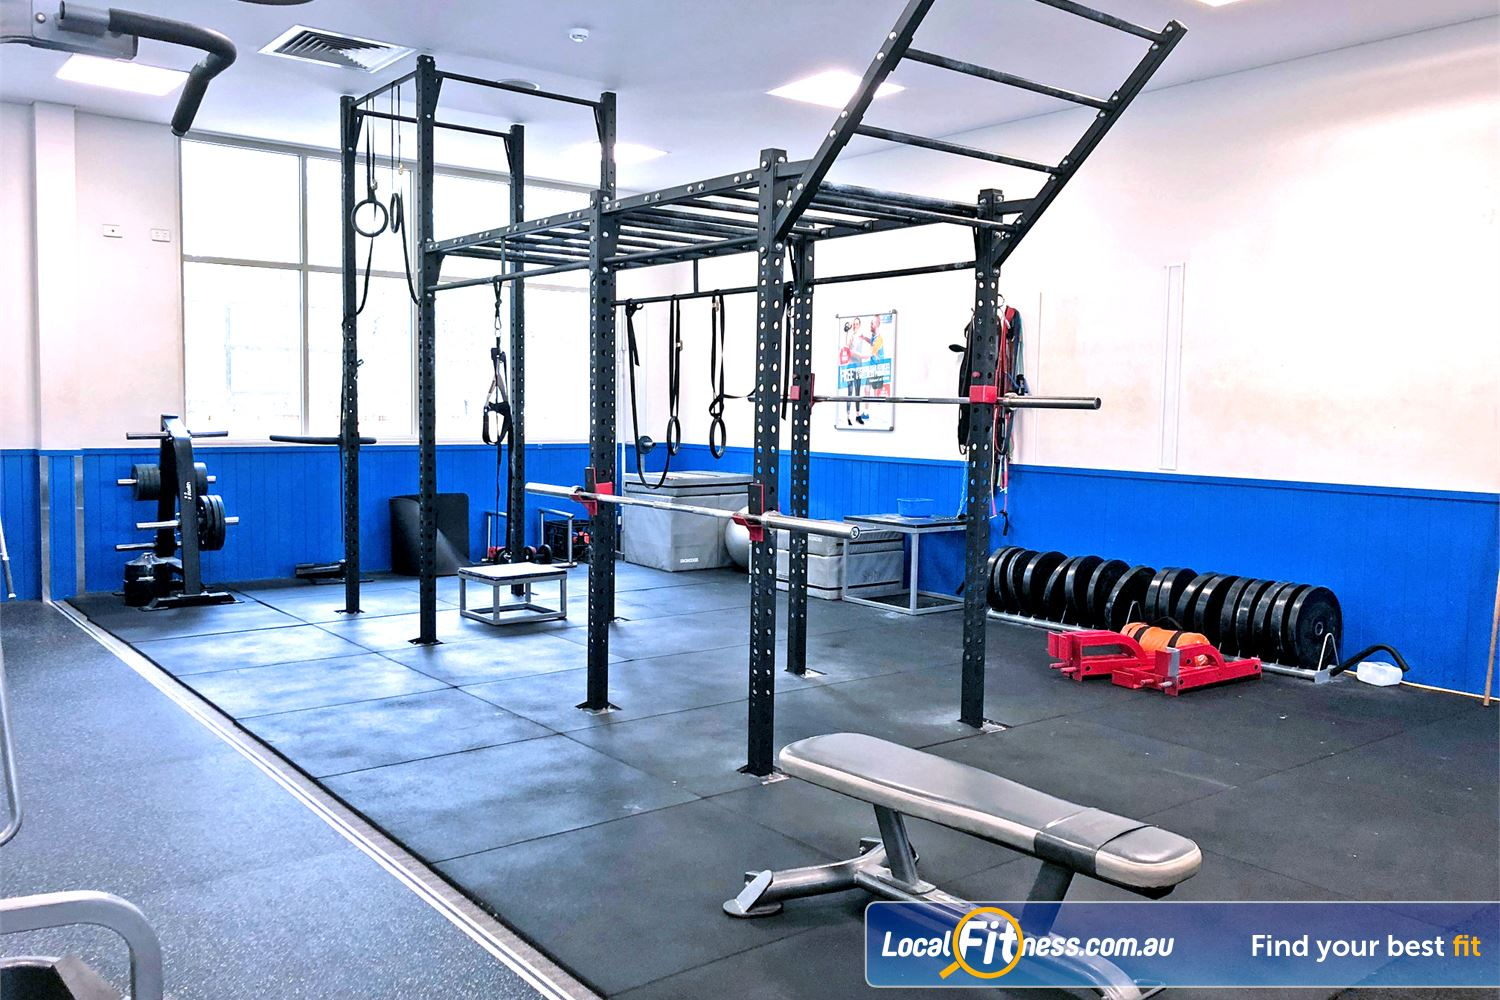 Albany Creek Leisure Centre Near Bridgeman Downs The dedicated functional training and HIIT Gym space.